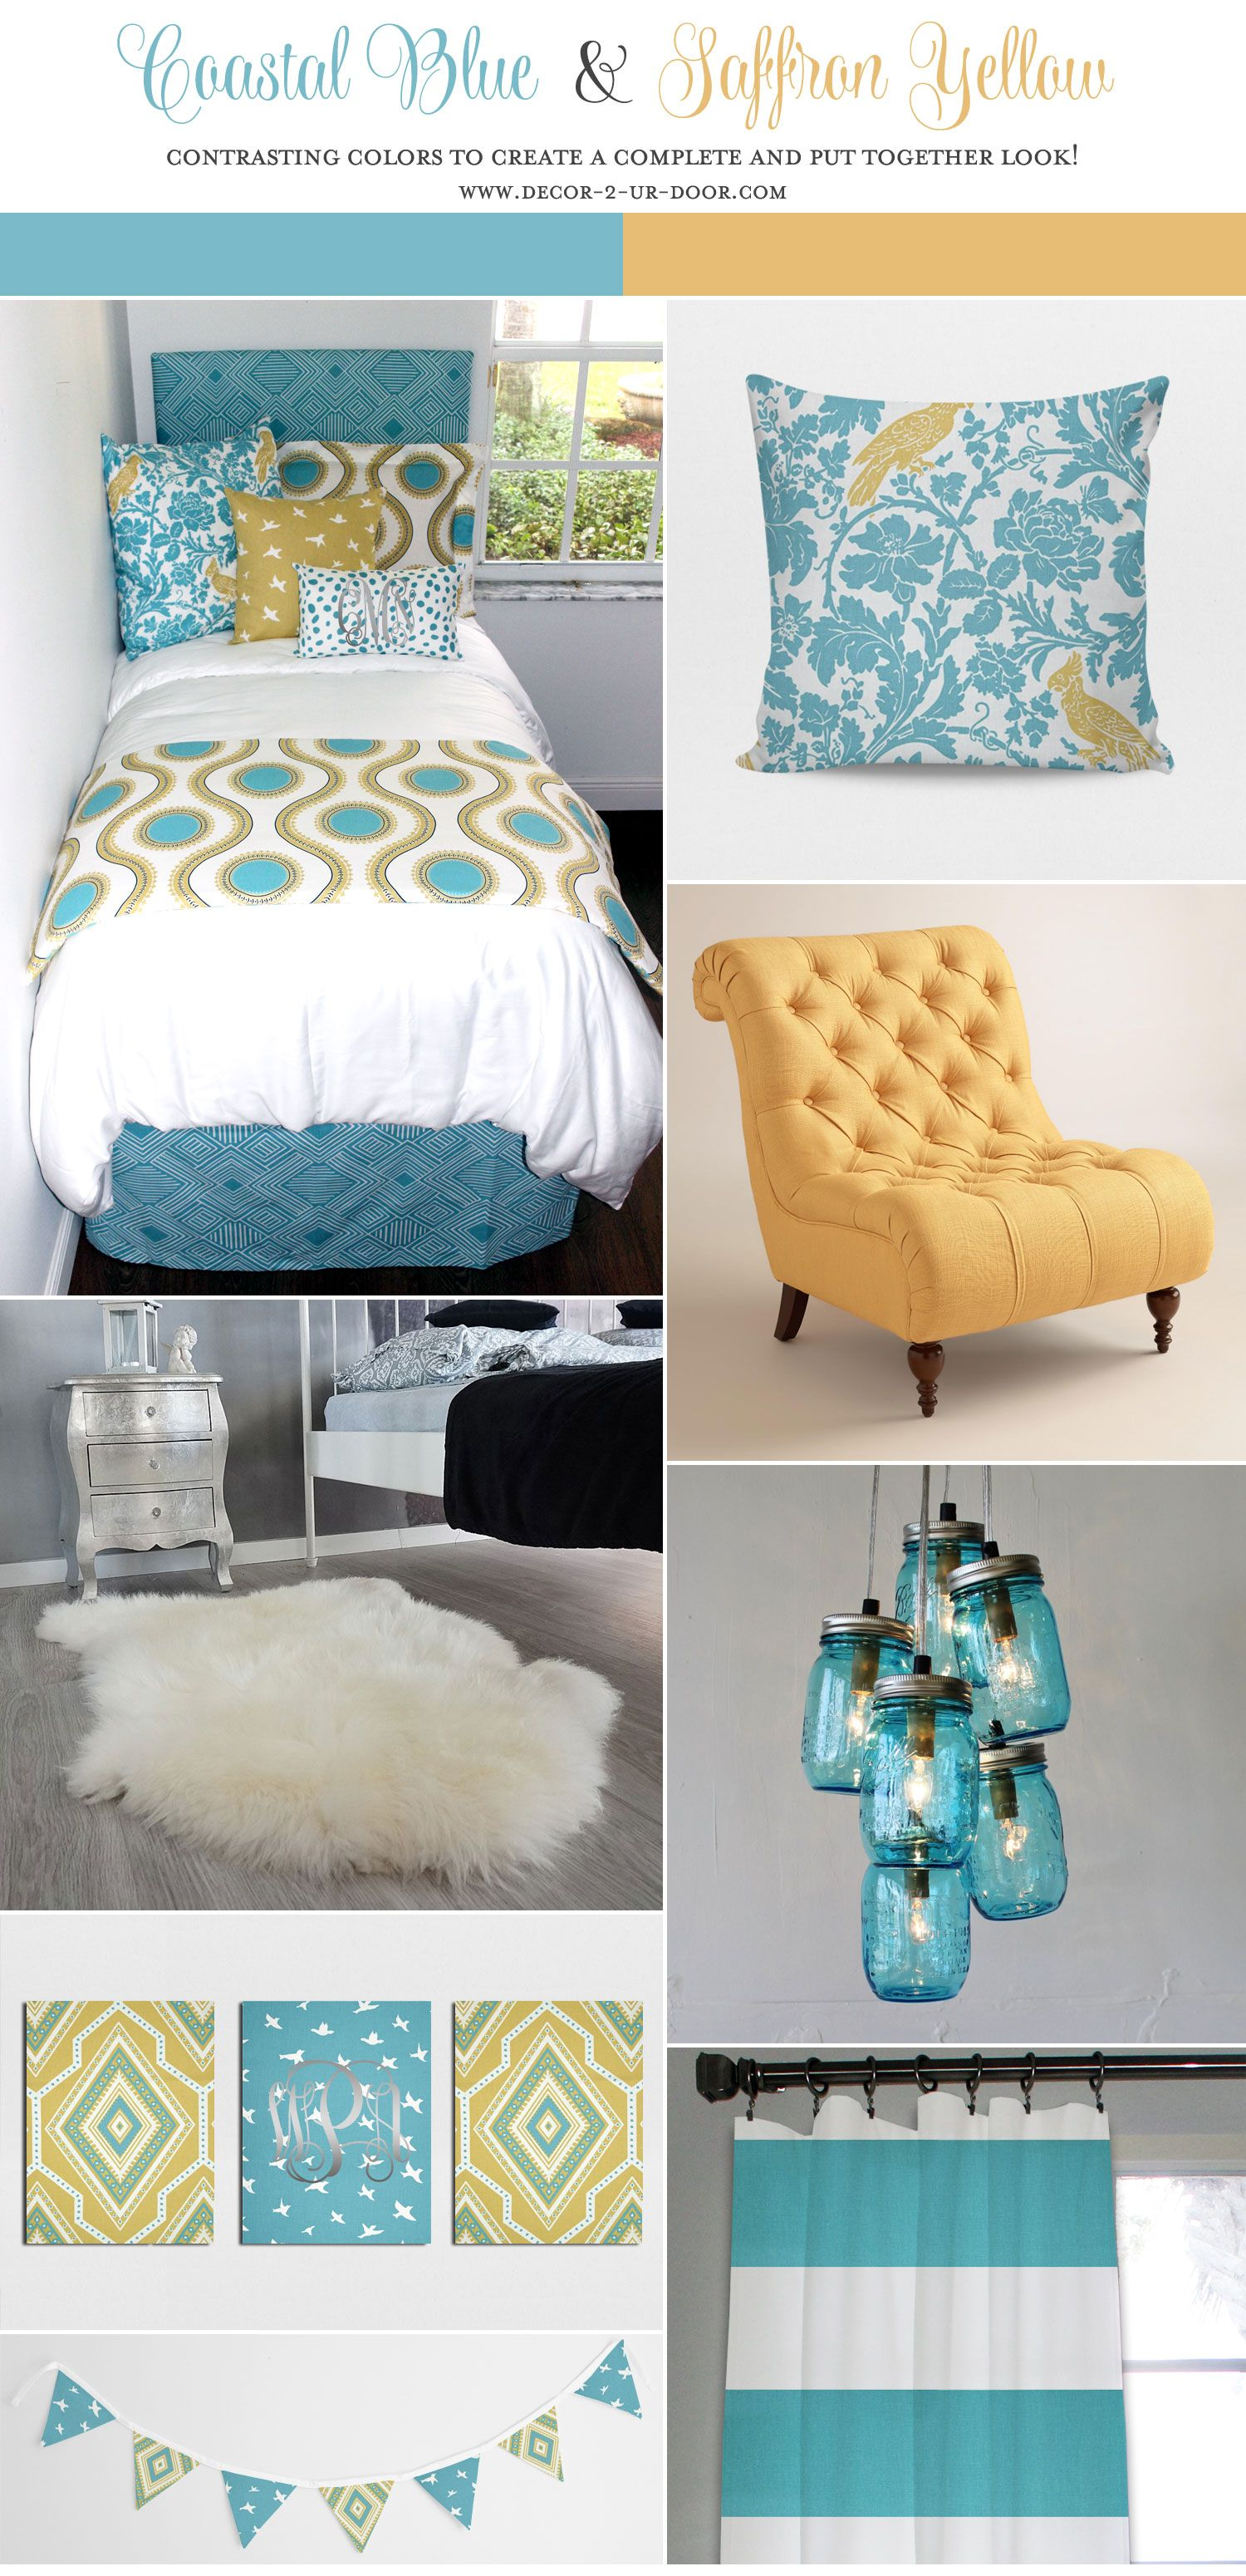 Yellow And Teal Dorm Room Inspiration Coastal Blue And Saffron